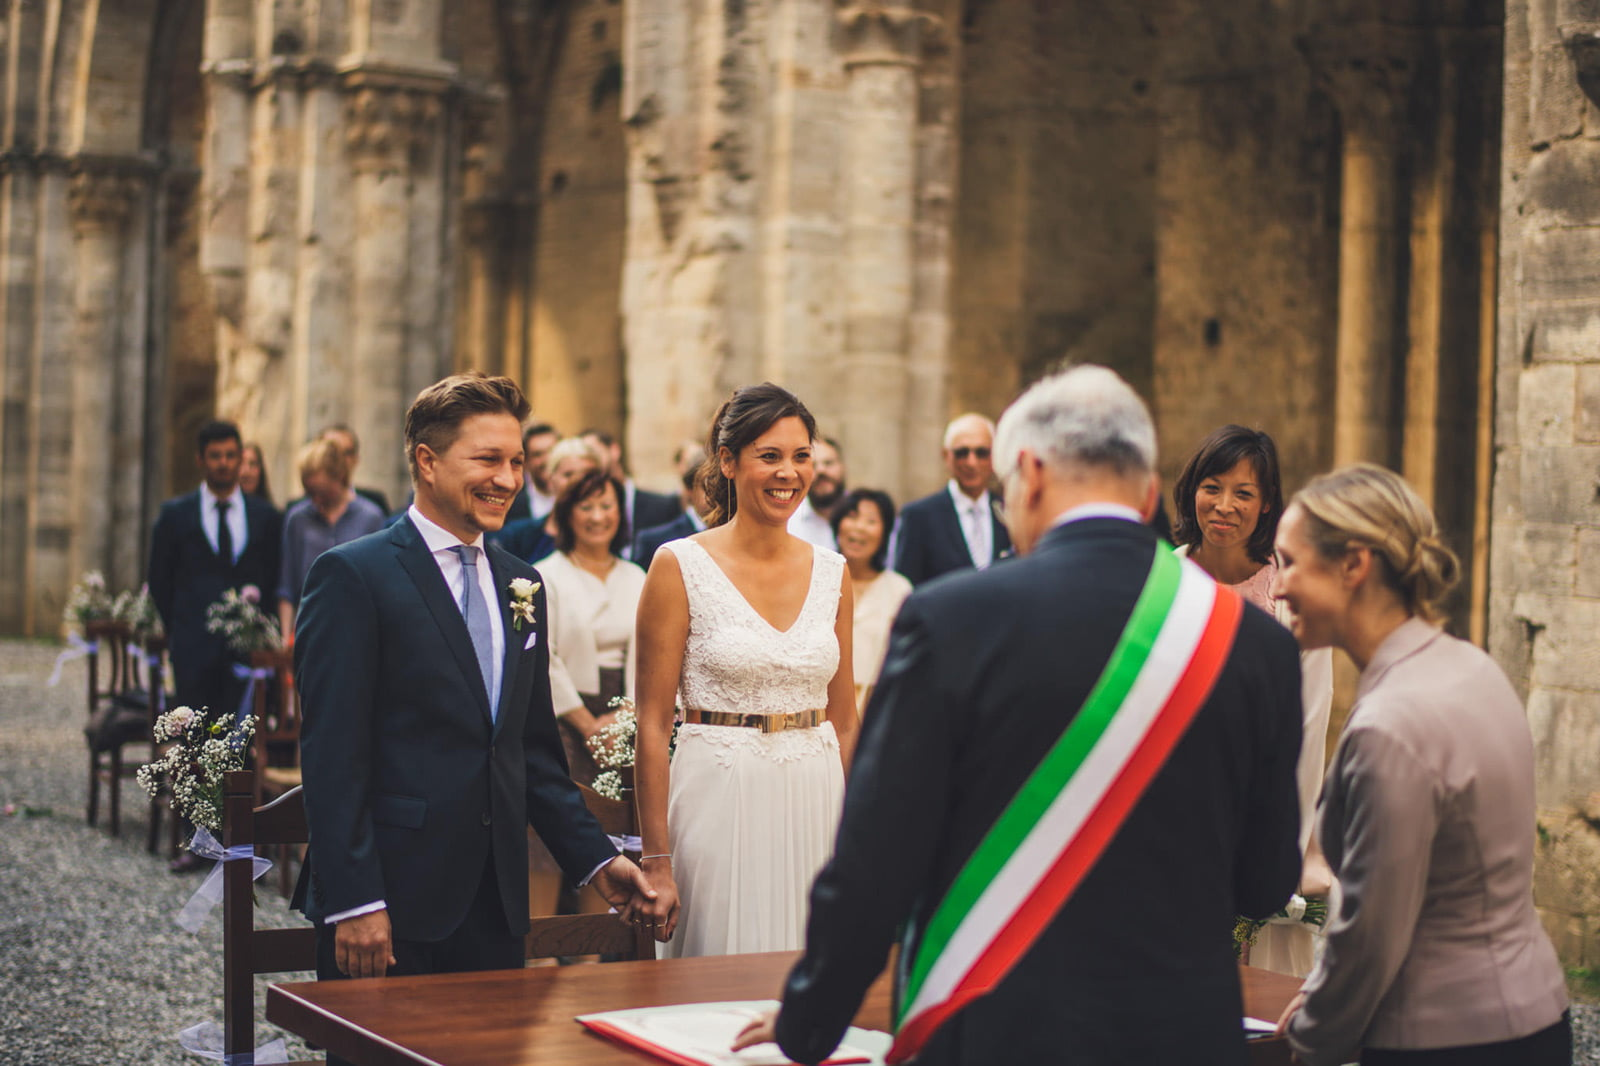 031-wedding-tuscany-san-galgano-siena-photographer